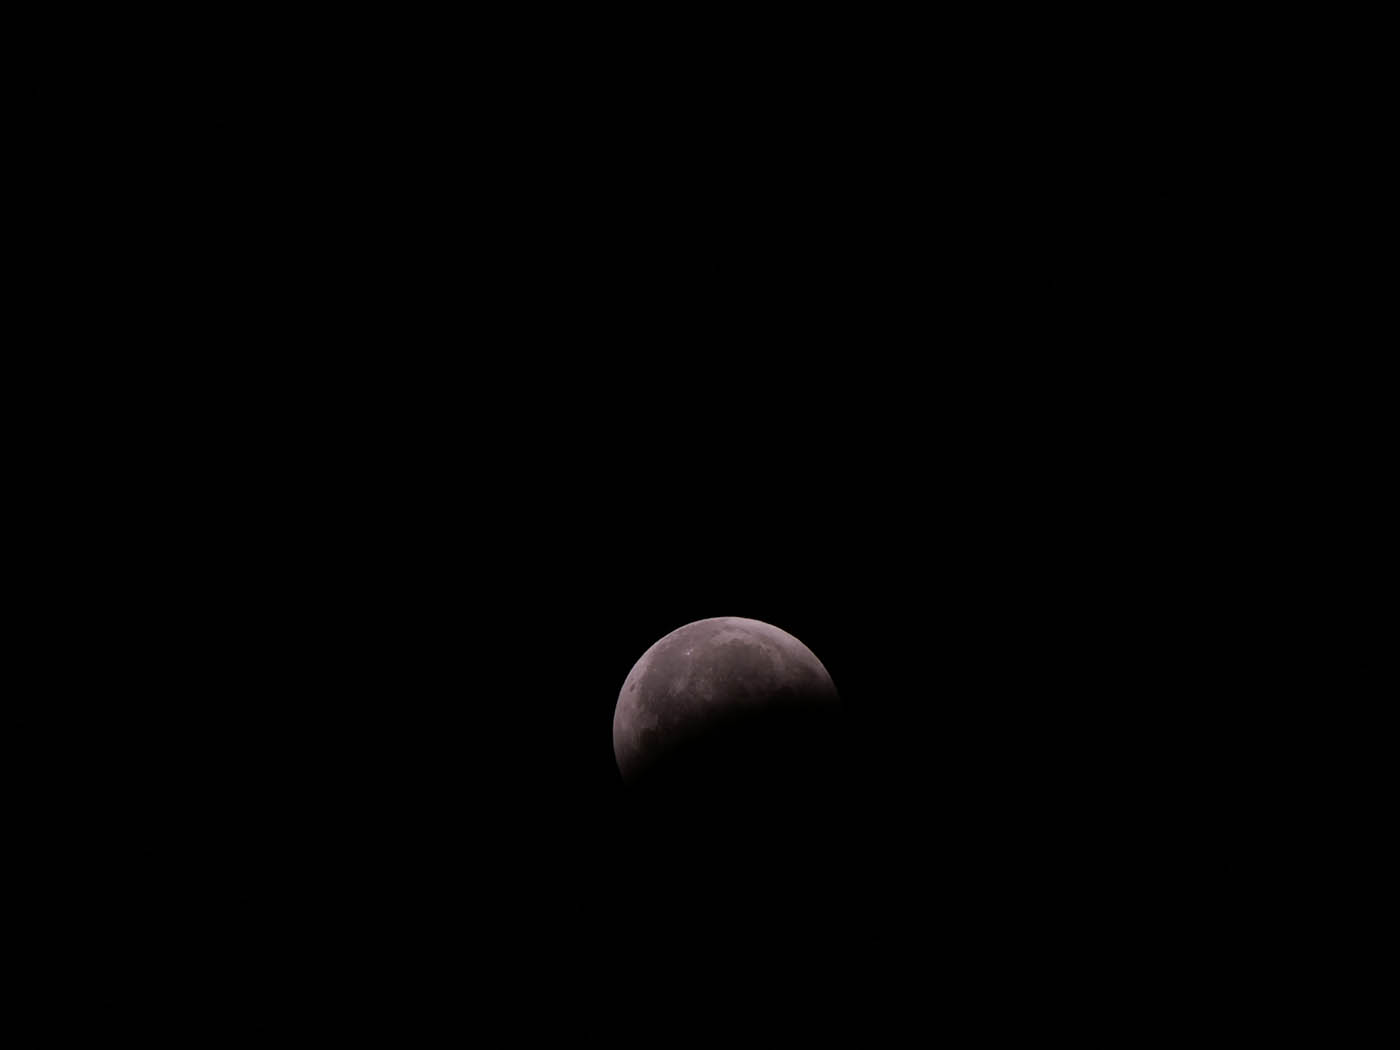 Panasonic Lumix 100 -300 mm photo Lune